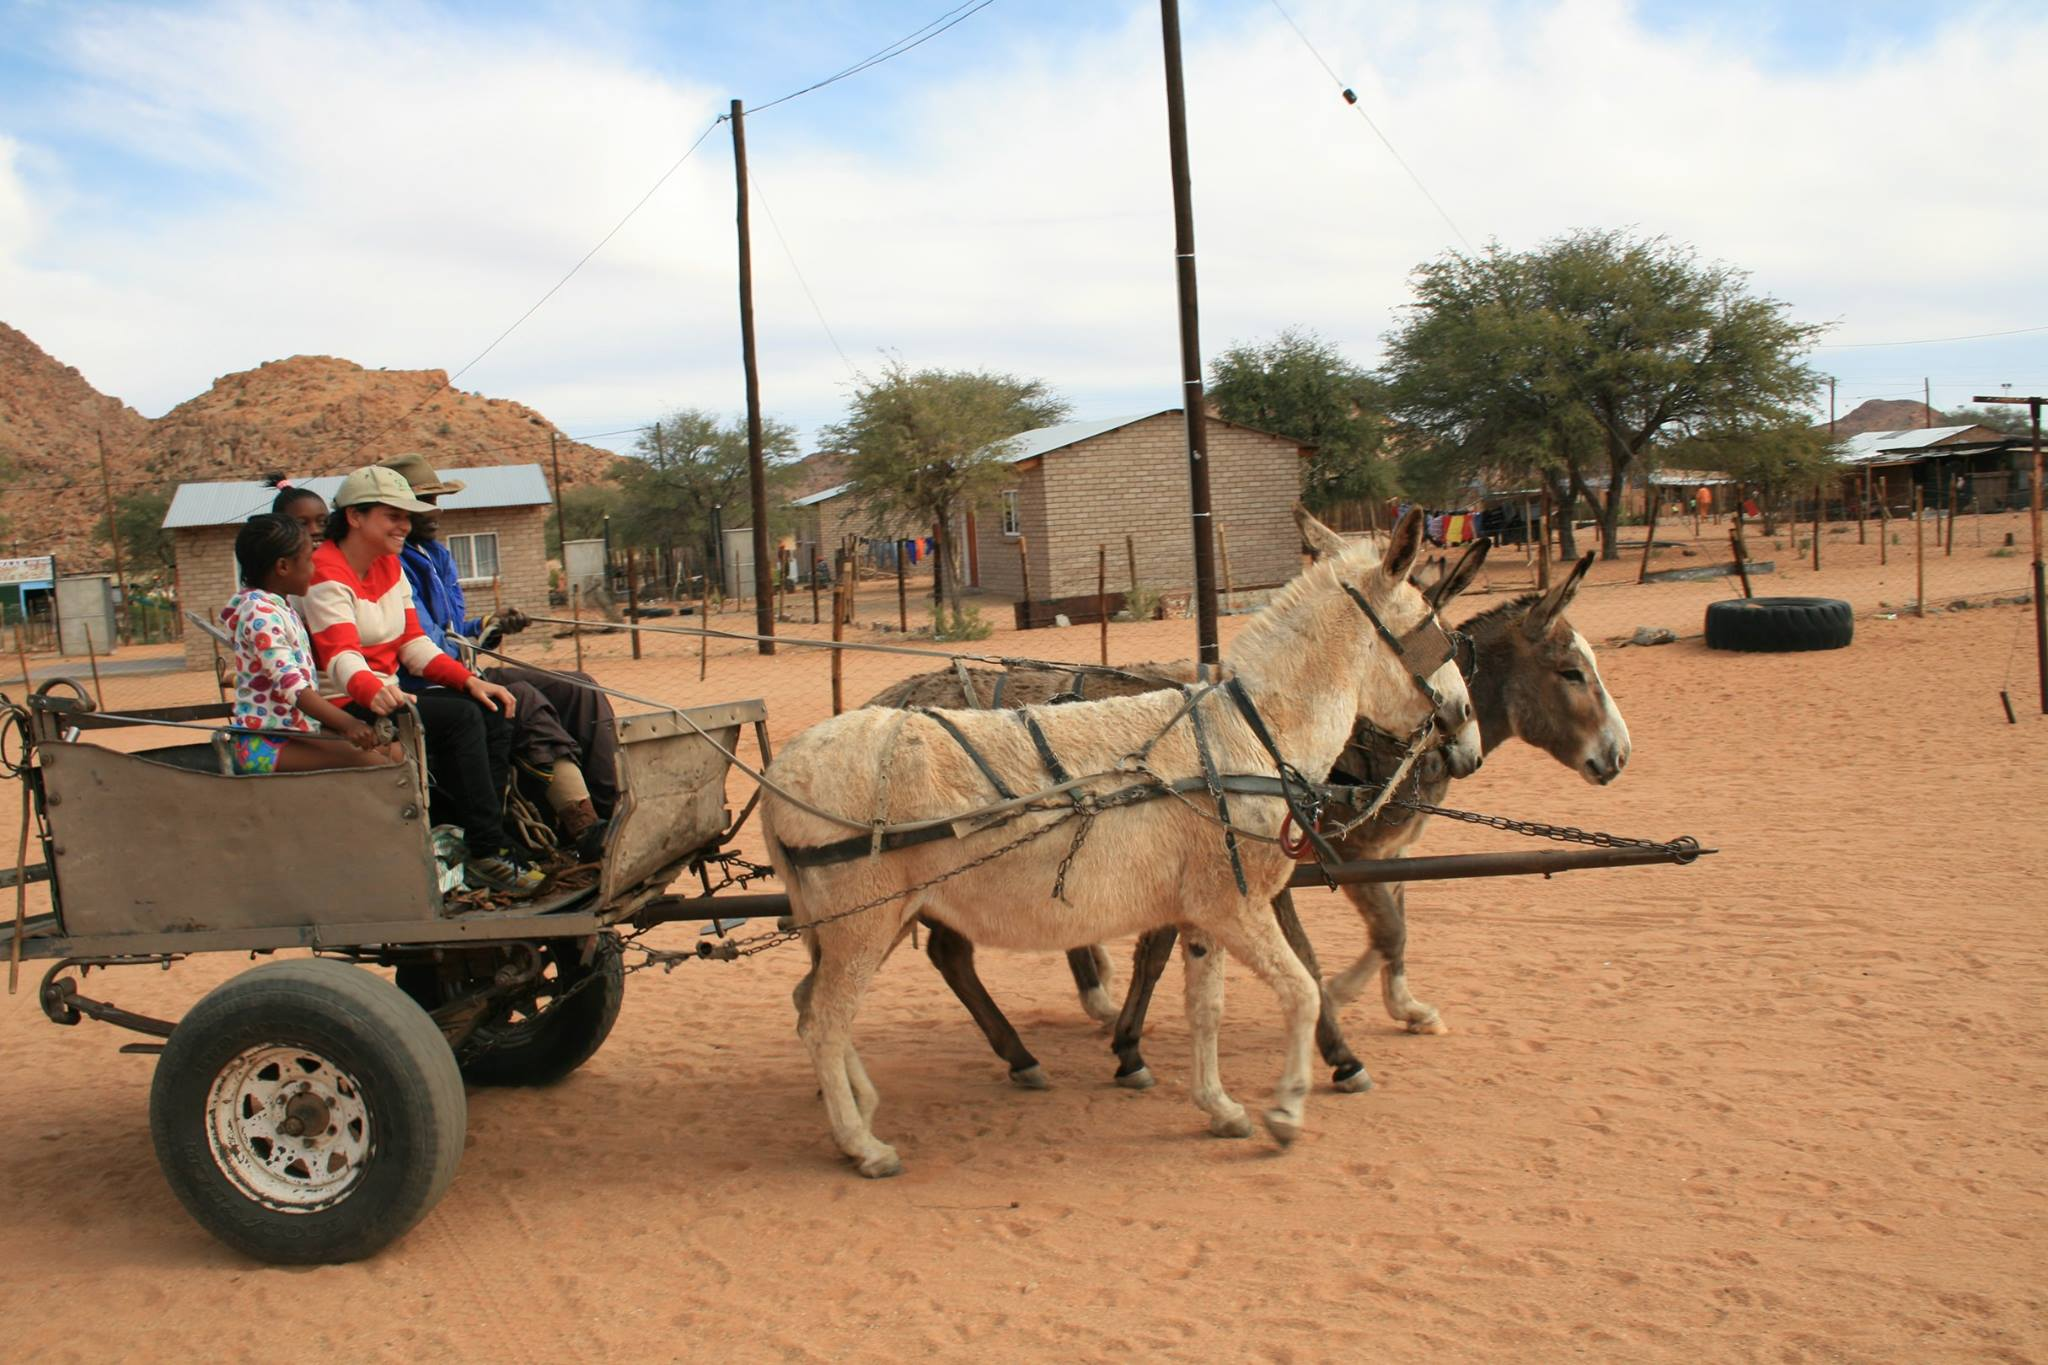 four people in a wagon pulled by donkeys in a dry, dusty town